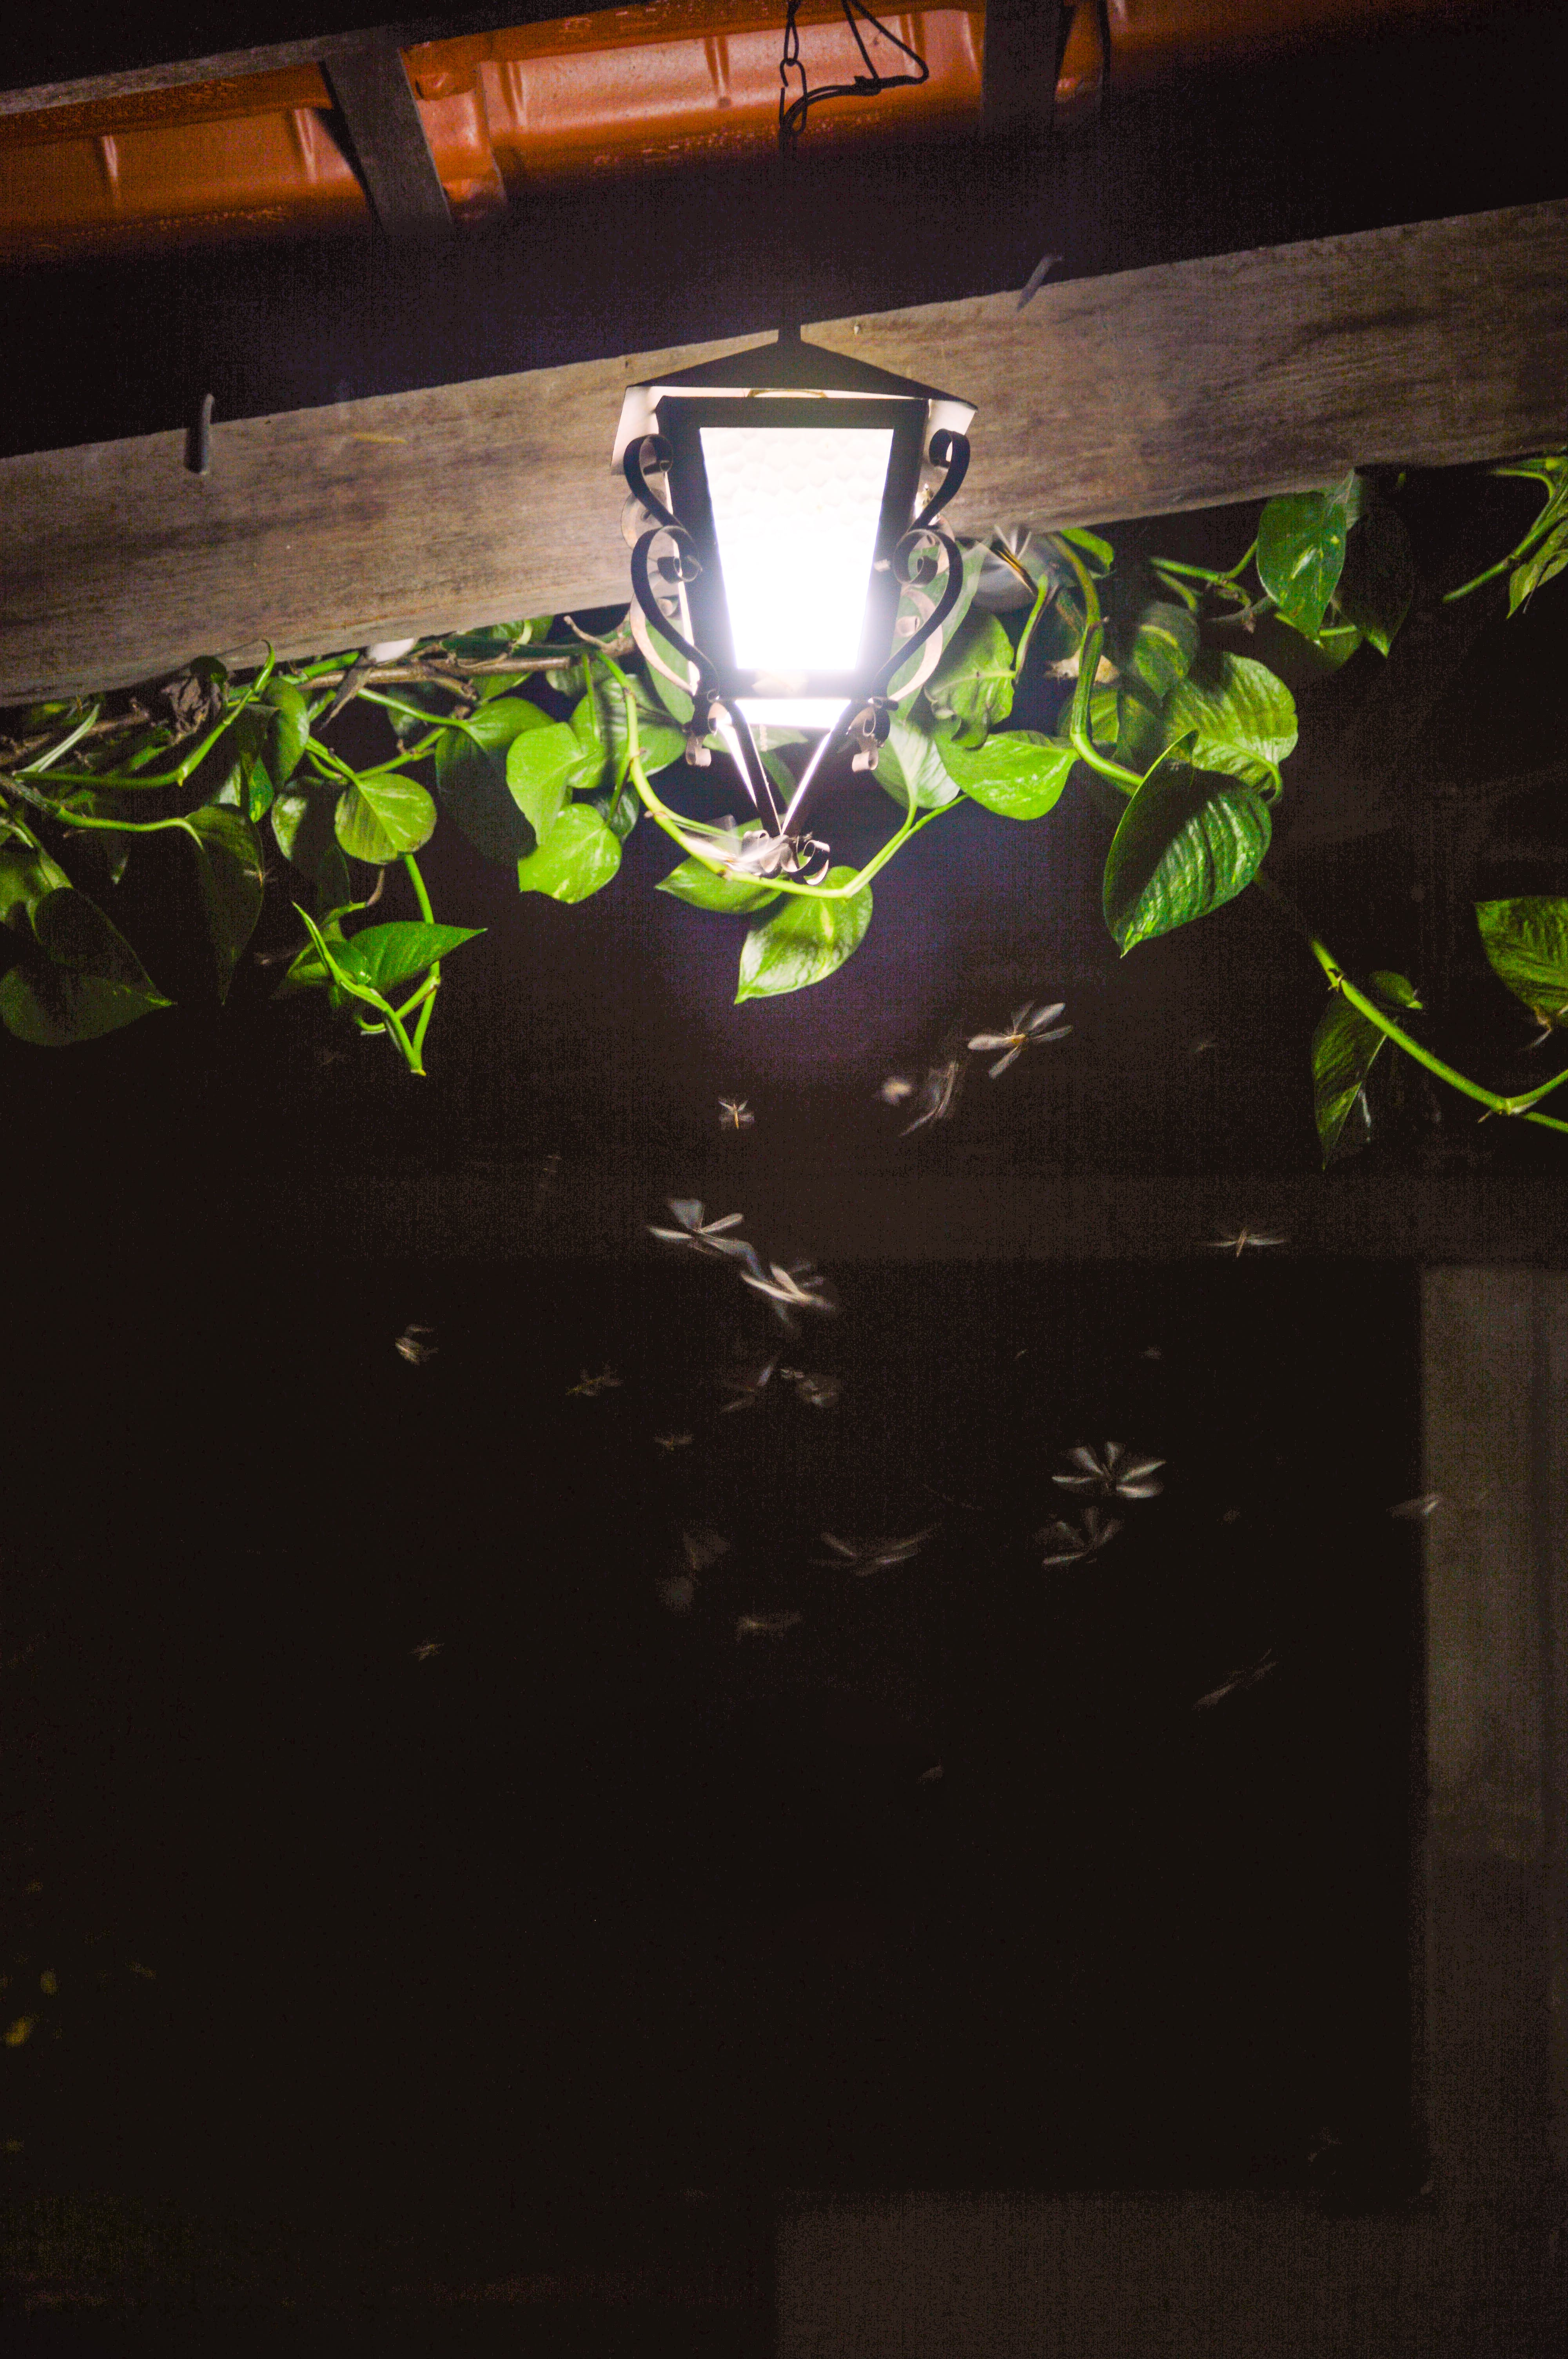 Free stock photo of light, house, leaves, lamp